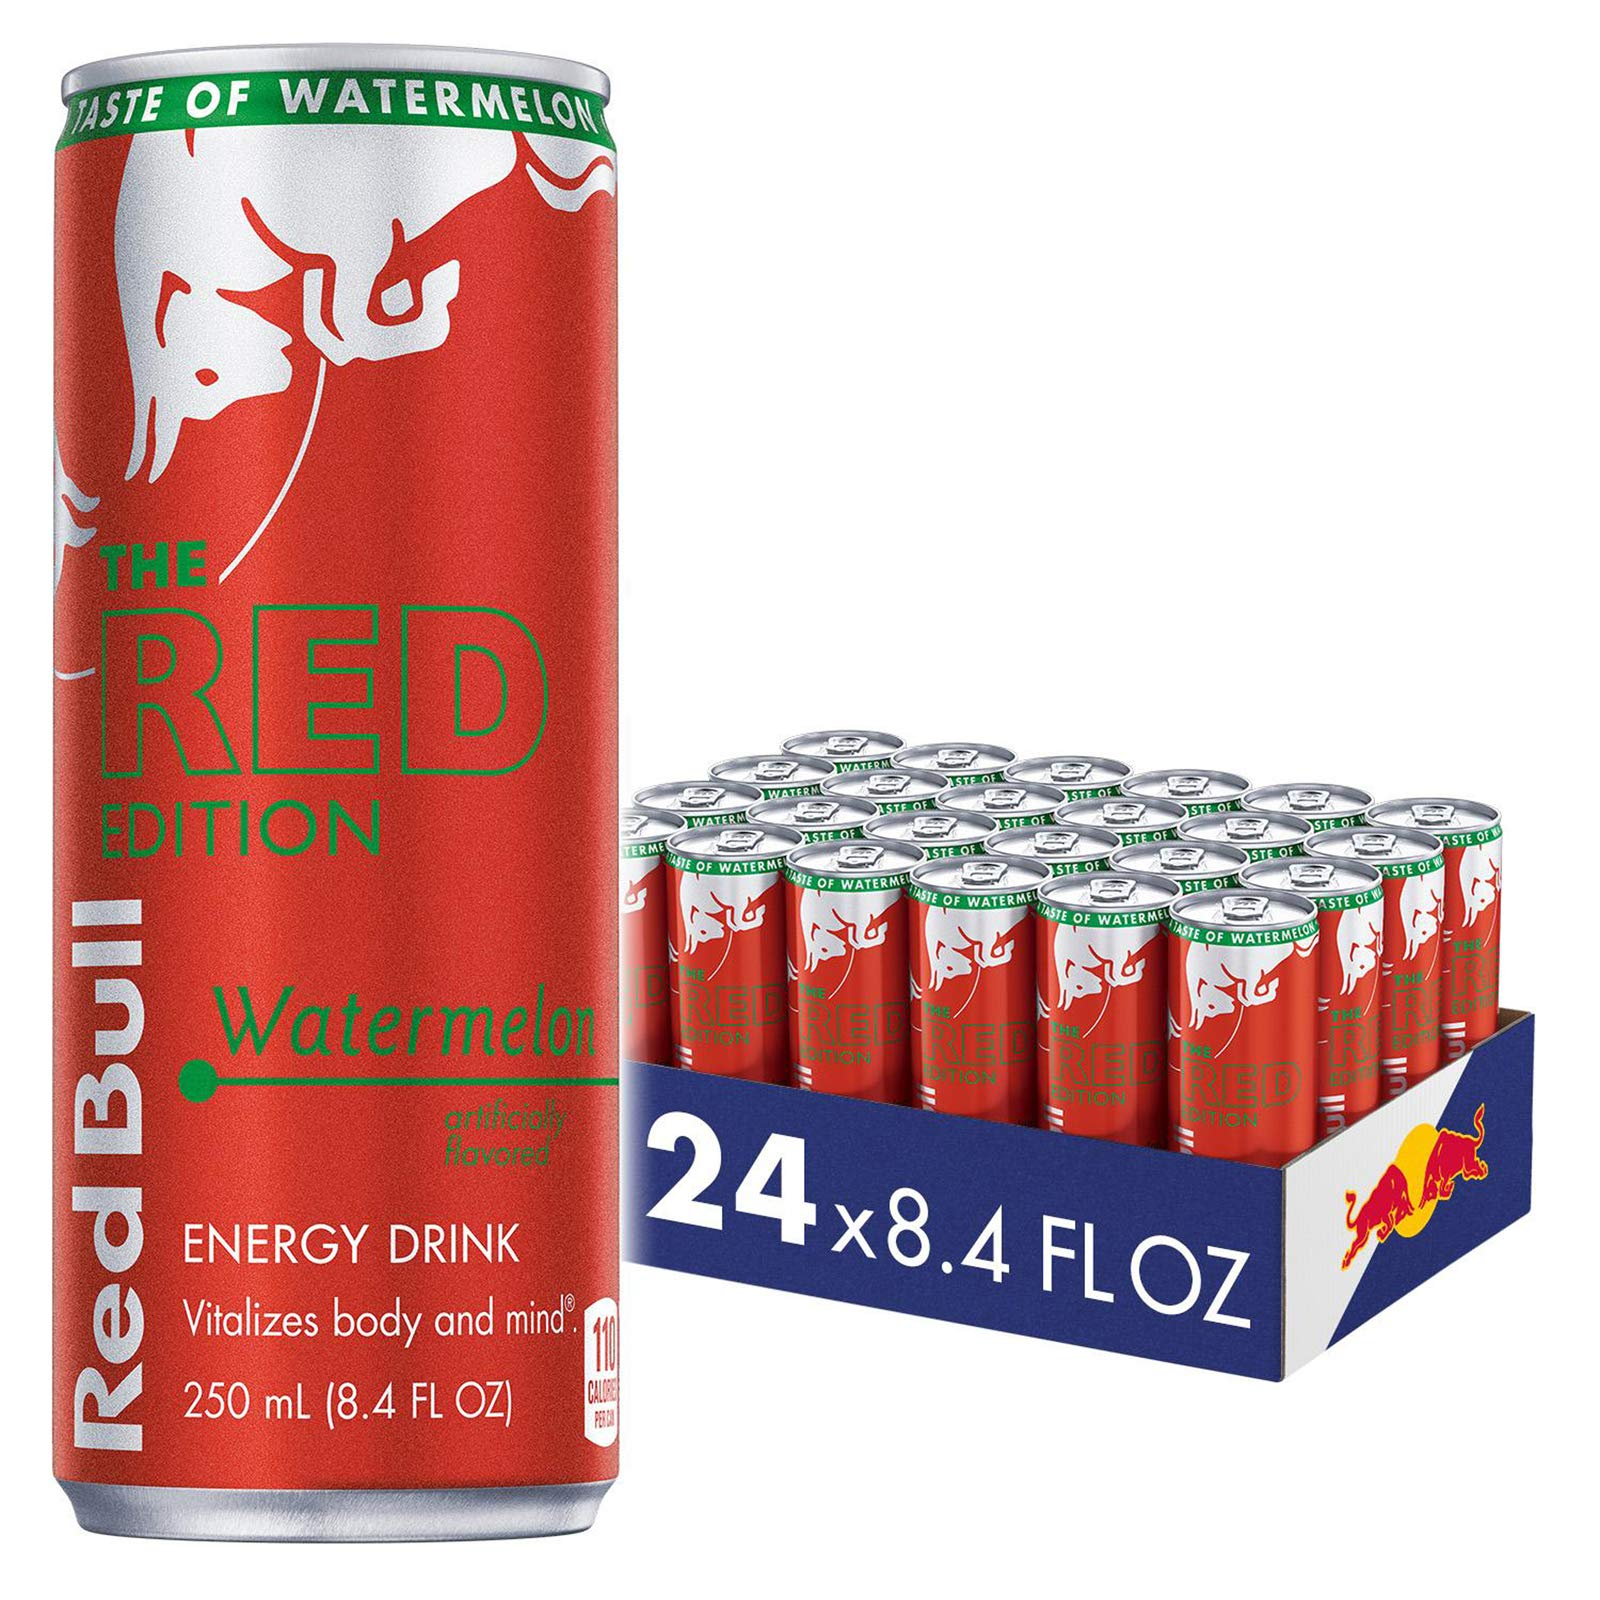 Red Bull Energy Drink, Watermelon, 8.4 fl oz (24Count), Red Edition